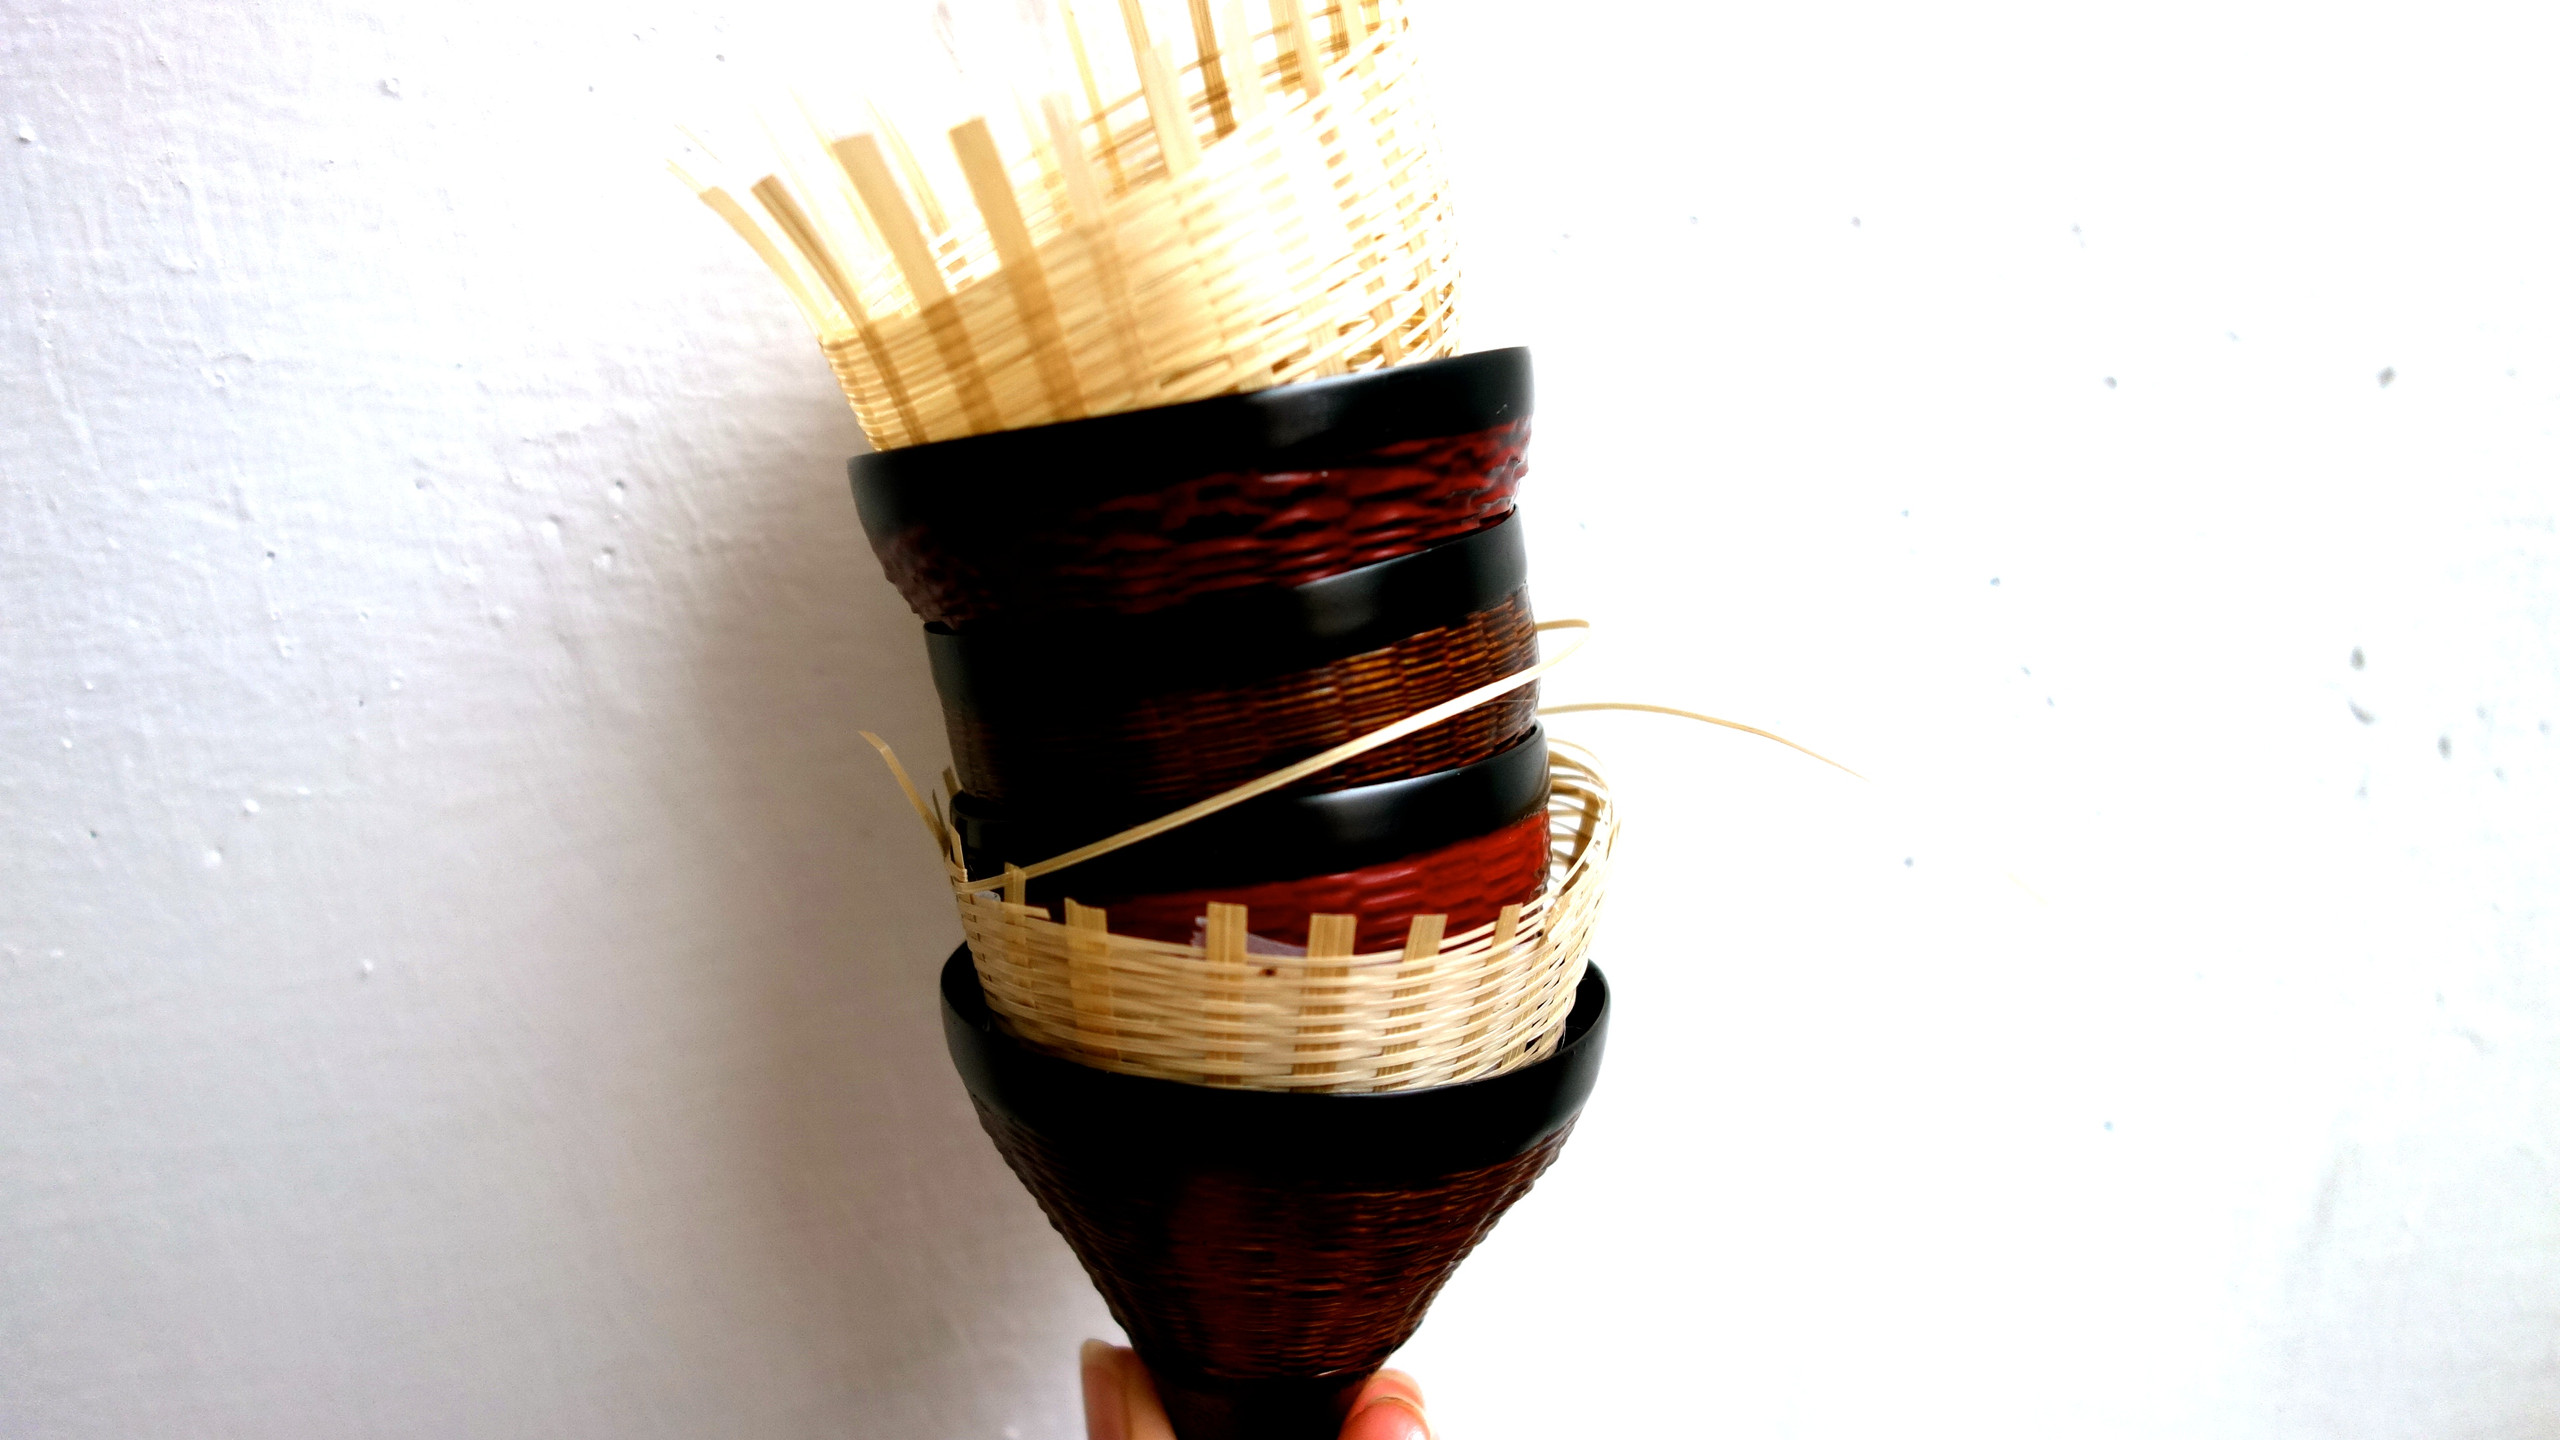 Bamboo Weaved Lacquer Tea Cups